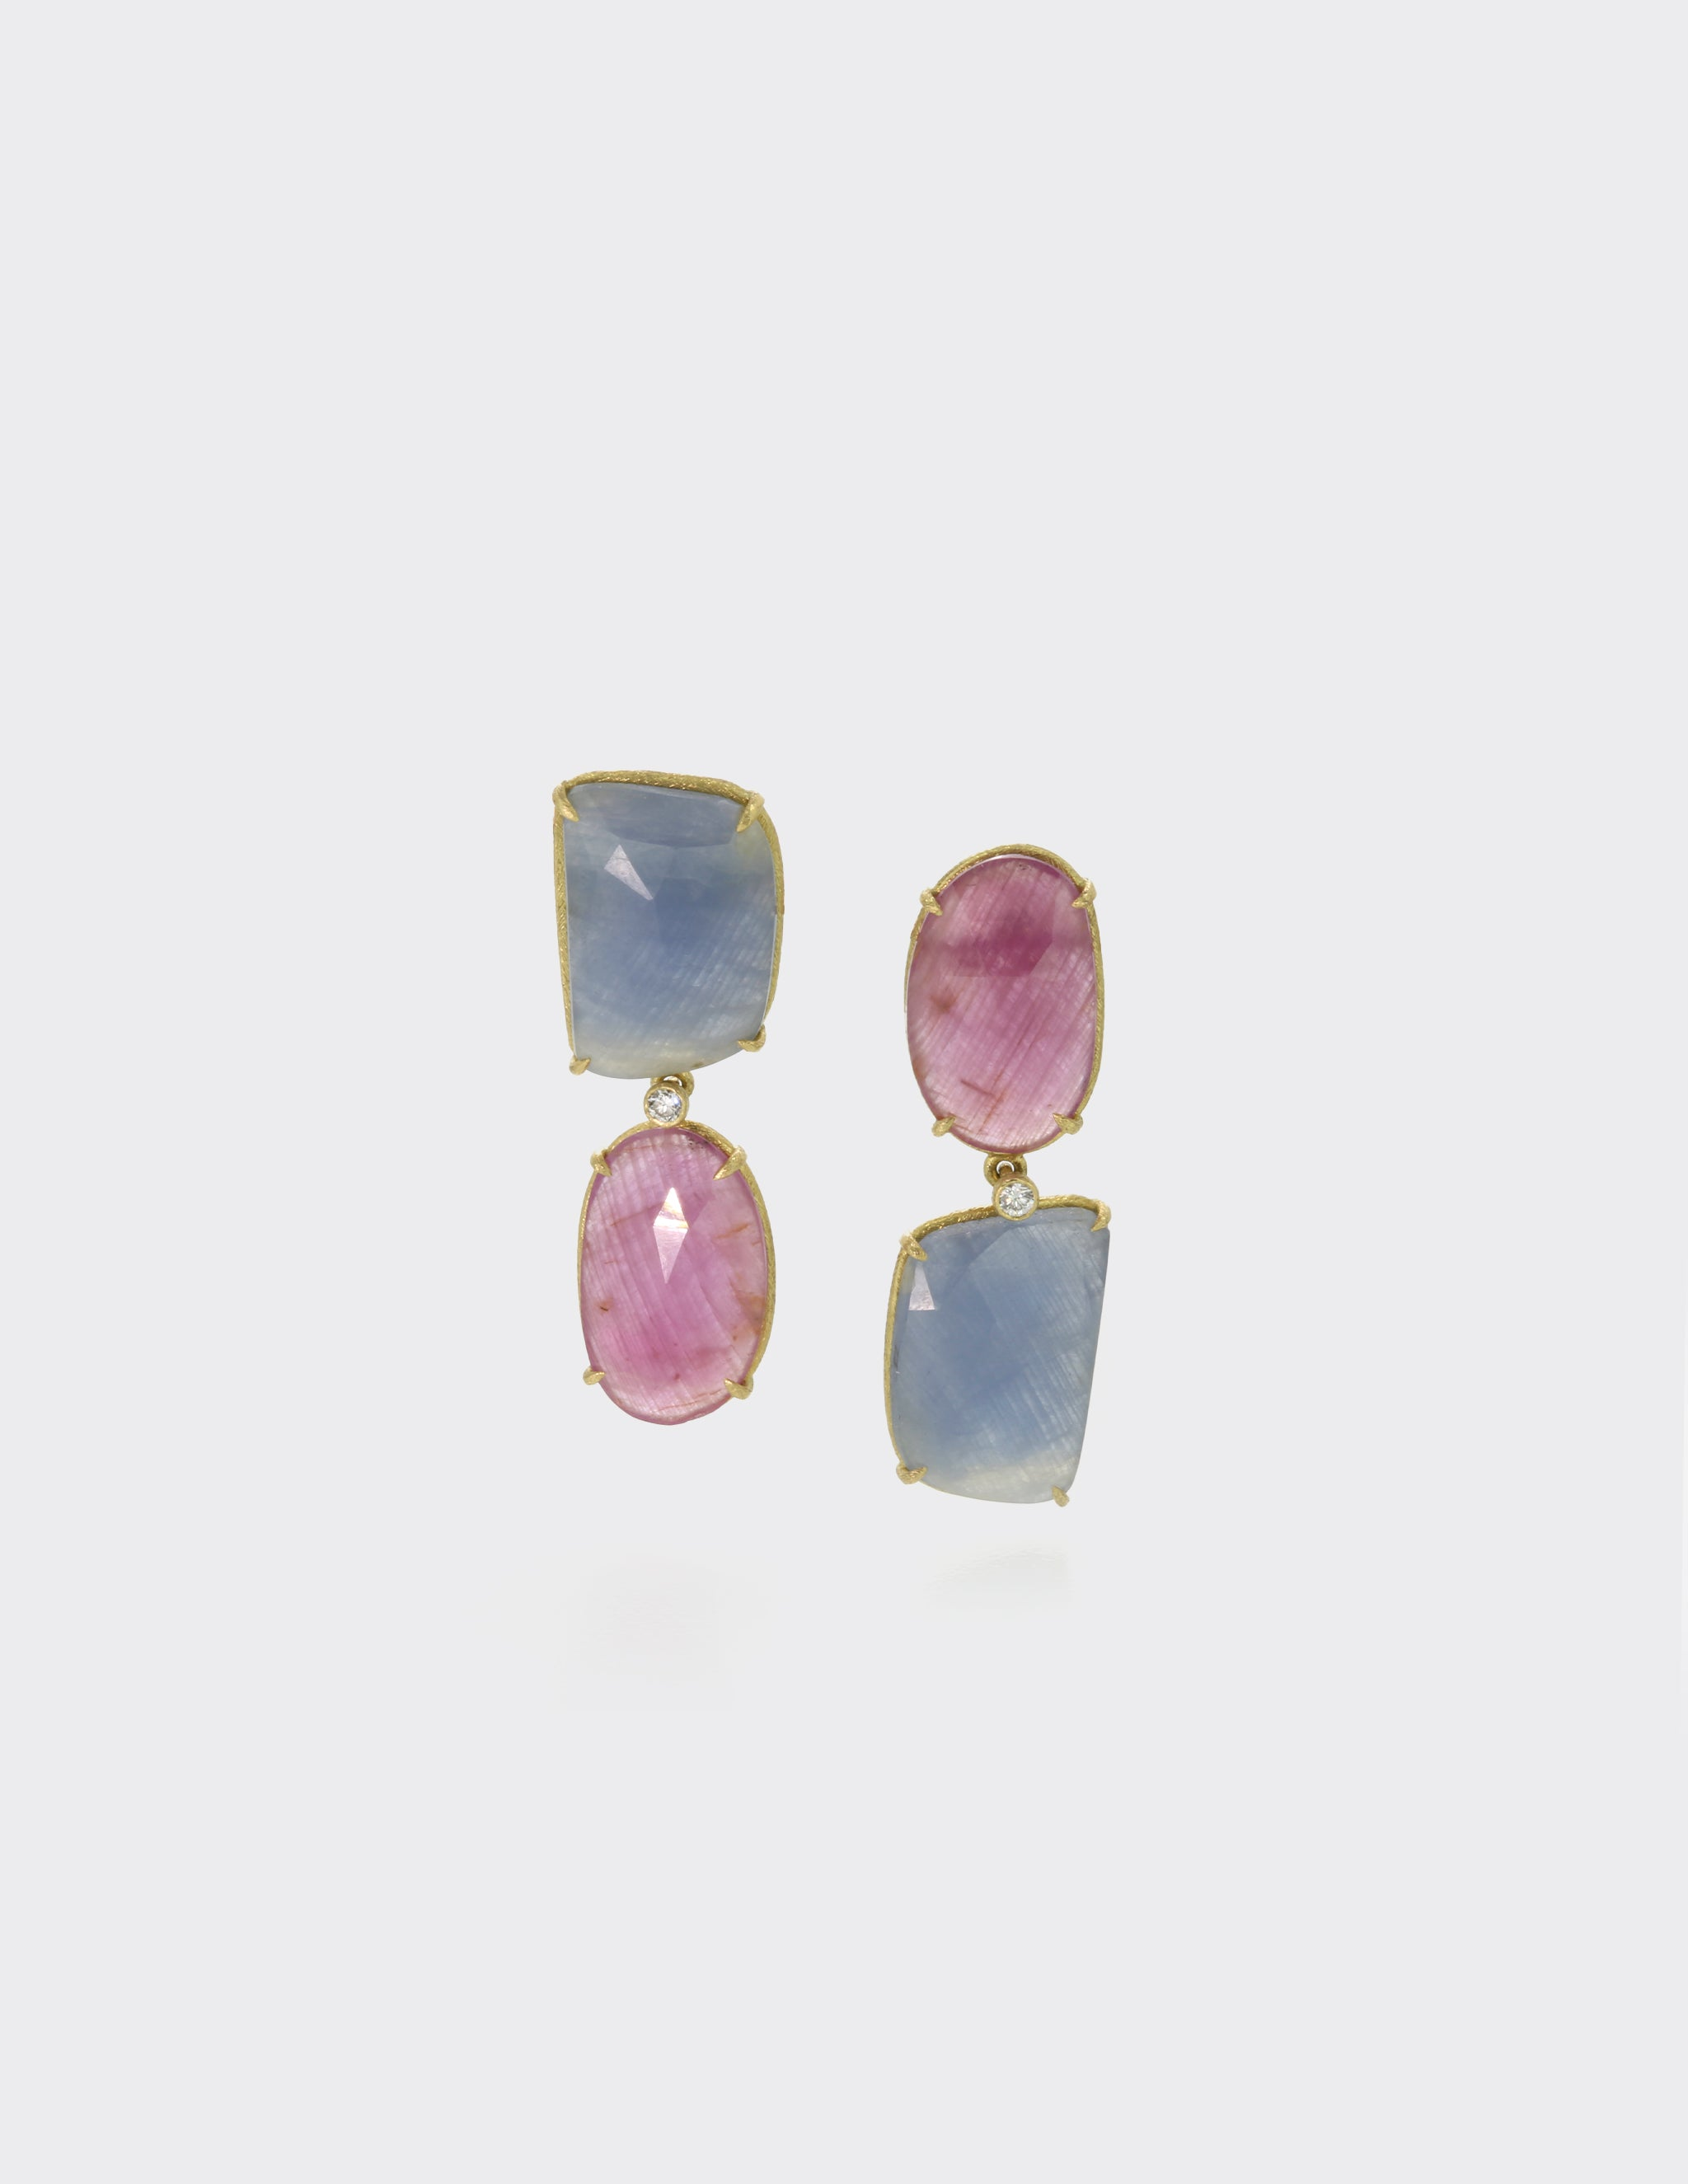 Upside down ear drops, blue and pink sapphires